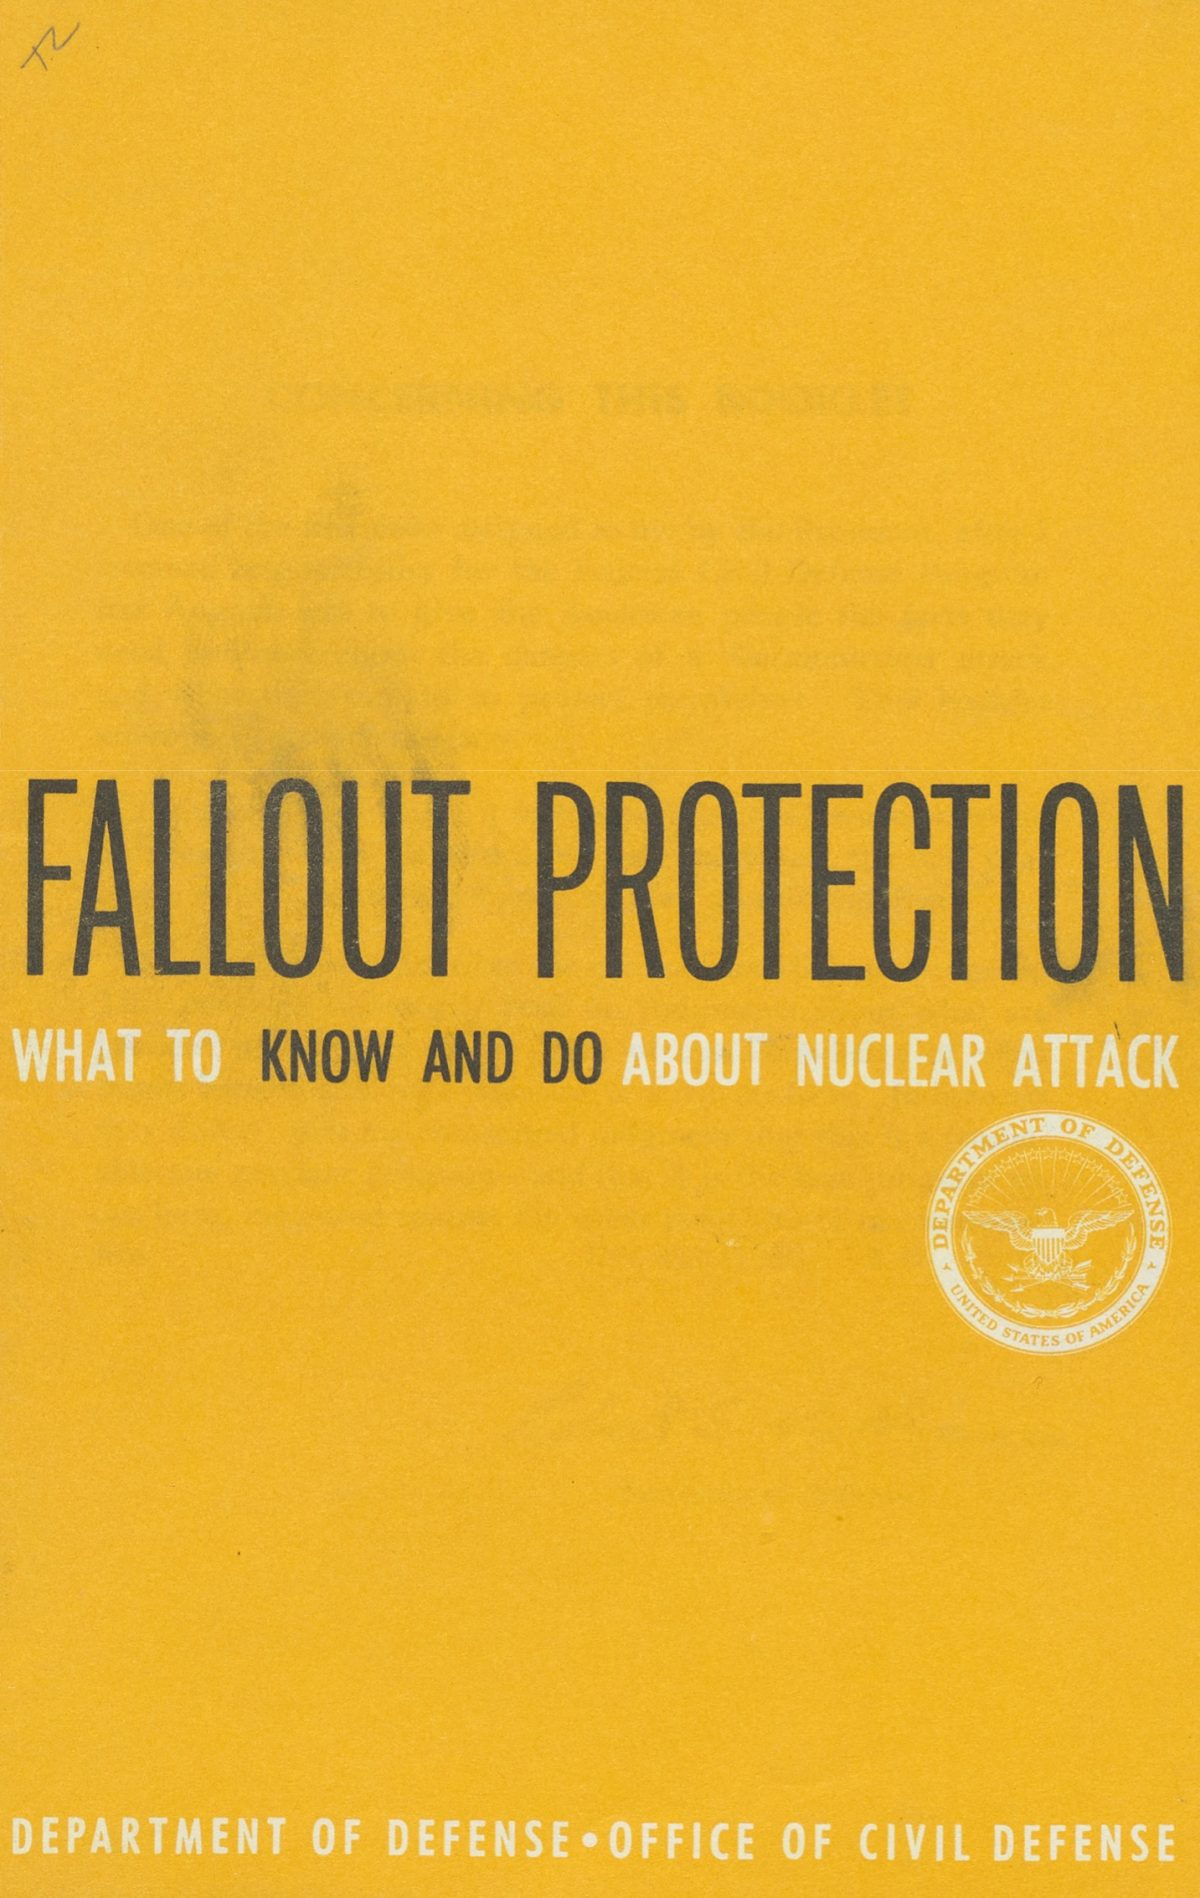 Nuclear survival pamphlets